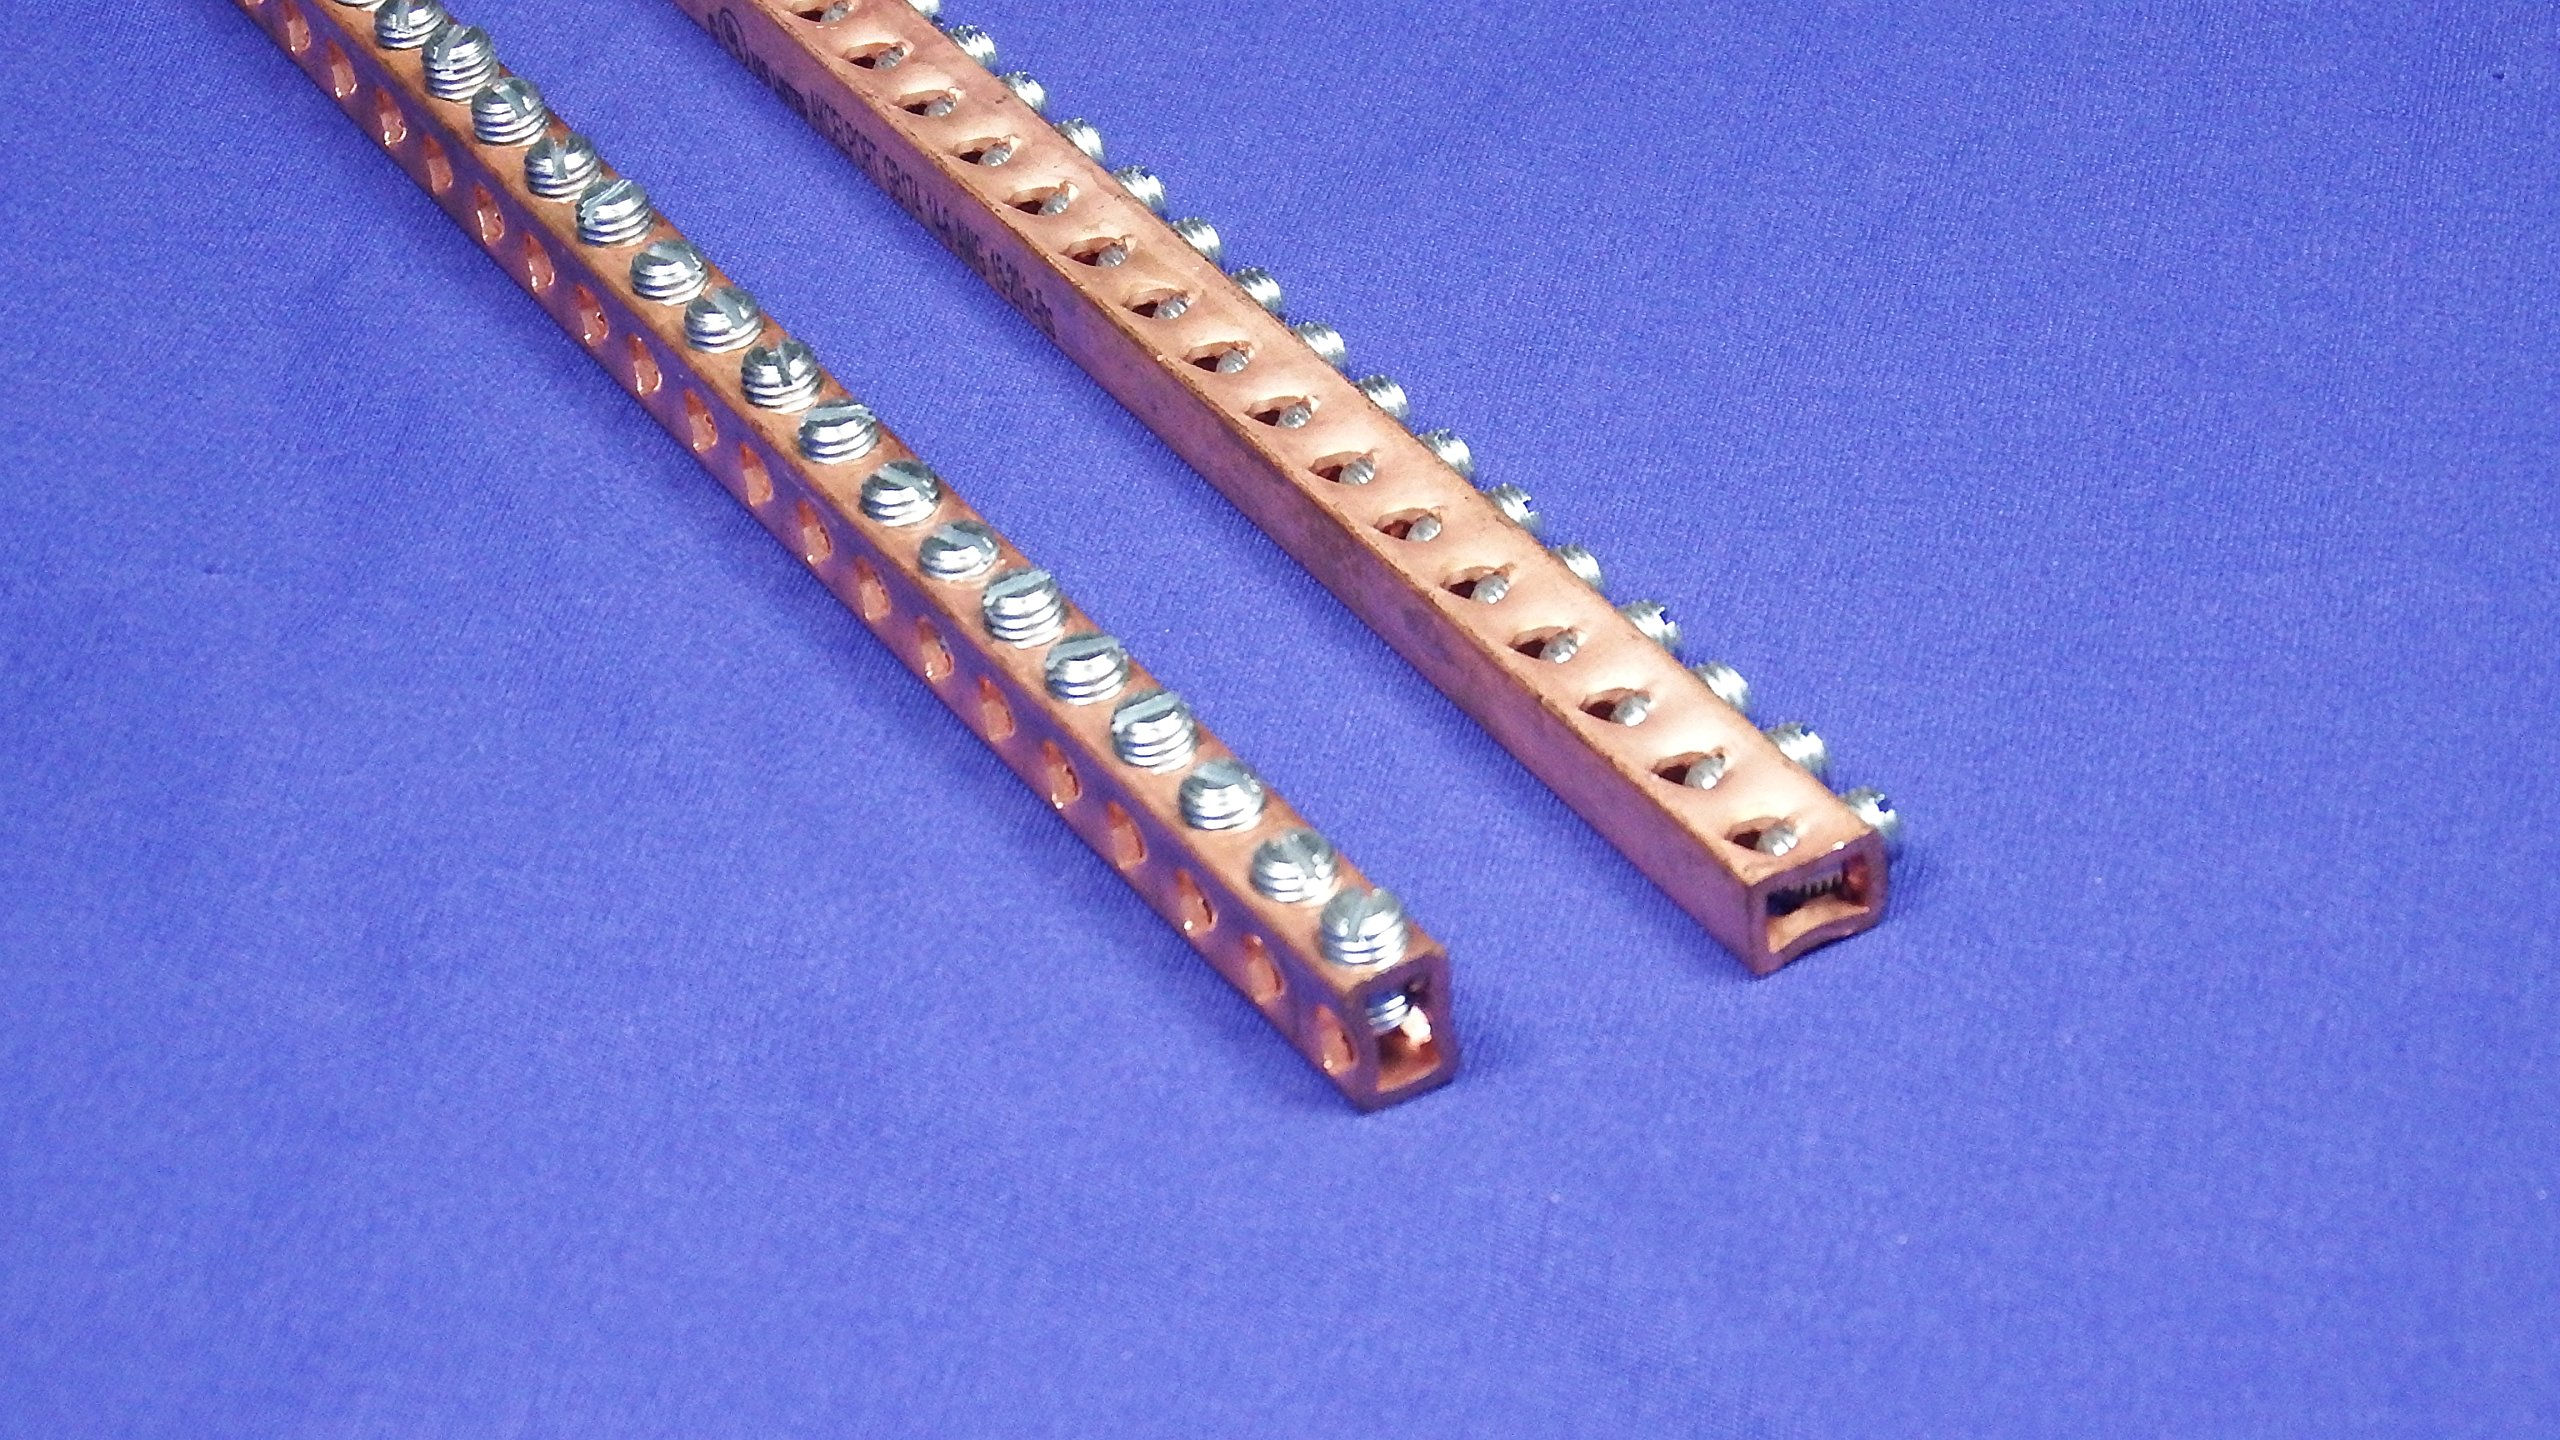 Copper Terminal Ground Bar Kit with Screws Included and Pre-Inserted - 69 Inch